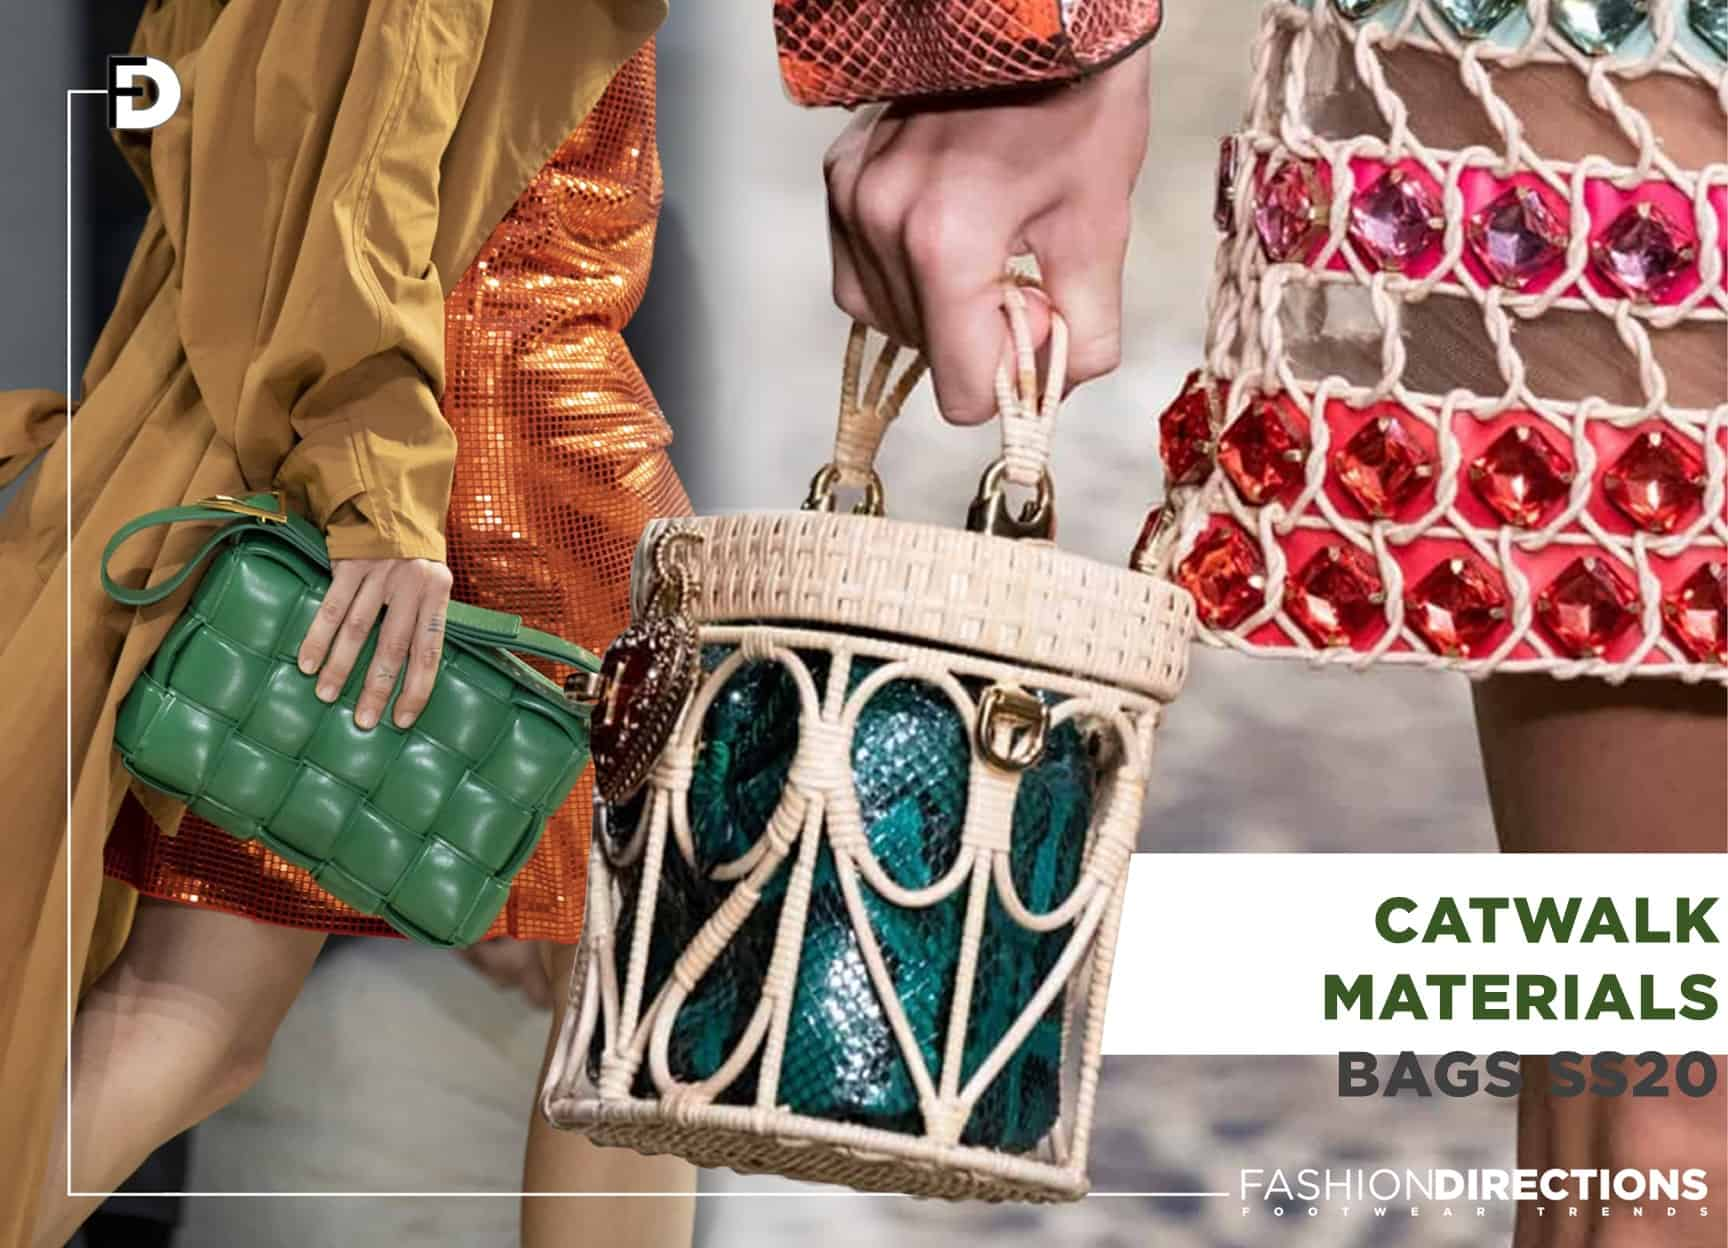 Catwalk SS20 Bags Trends 1 materials